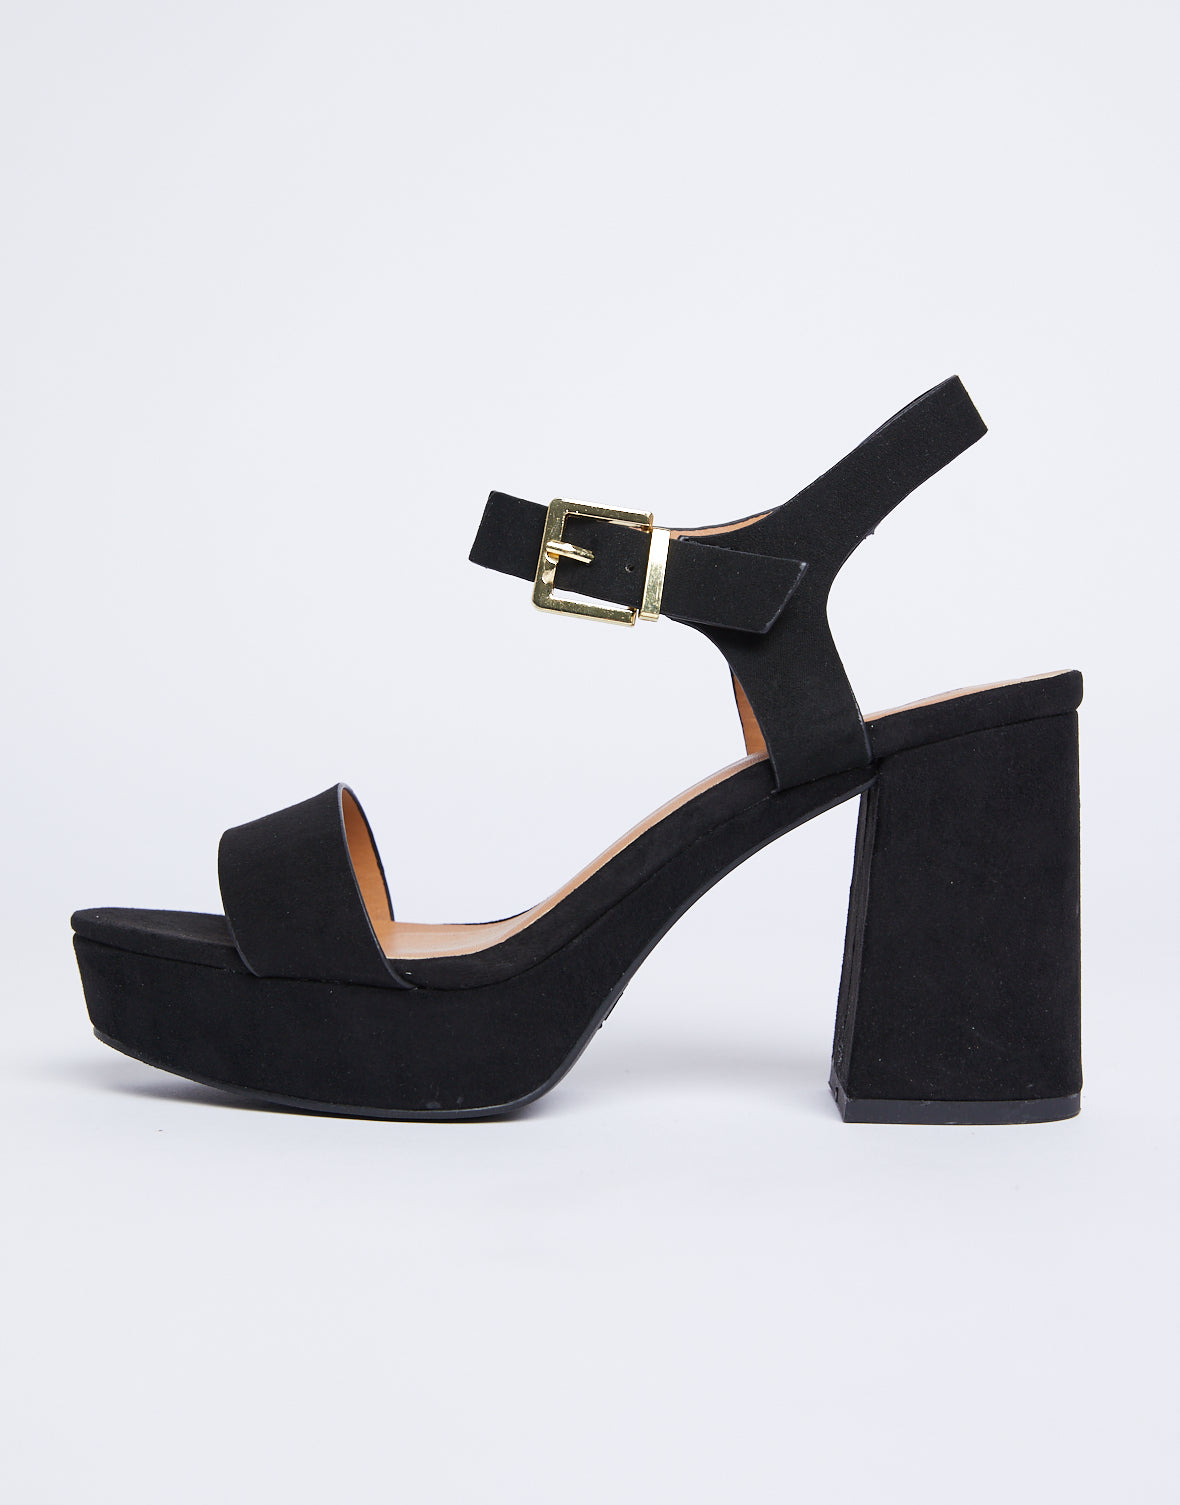 The All Black Chunky Heel